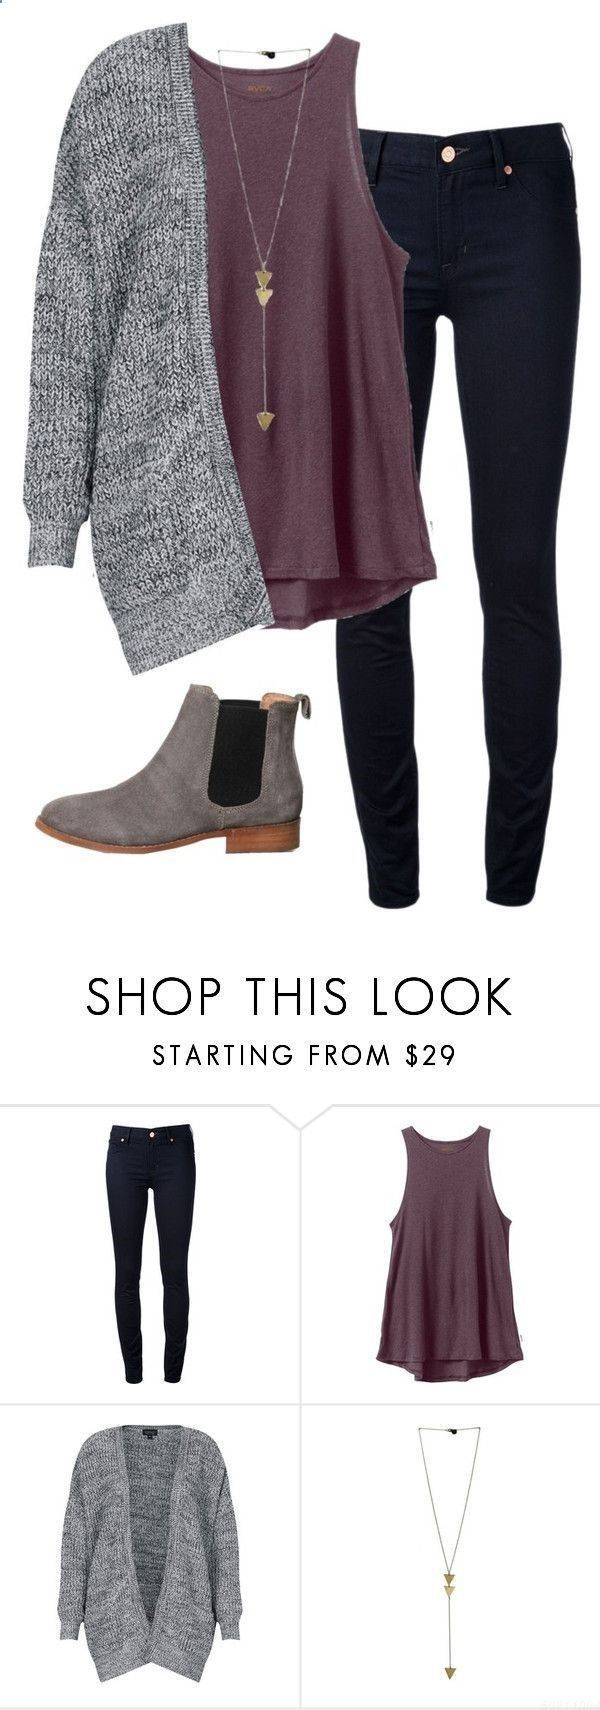 Winter Outfits | Winter Fashion | Winter Coats | Winter Boots. Find the best original fashionable breakthroughs, cold weather coats, new footwear, new…